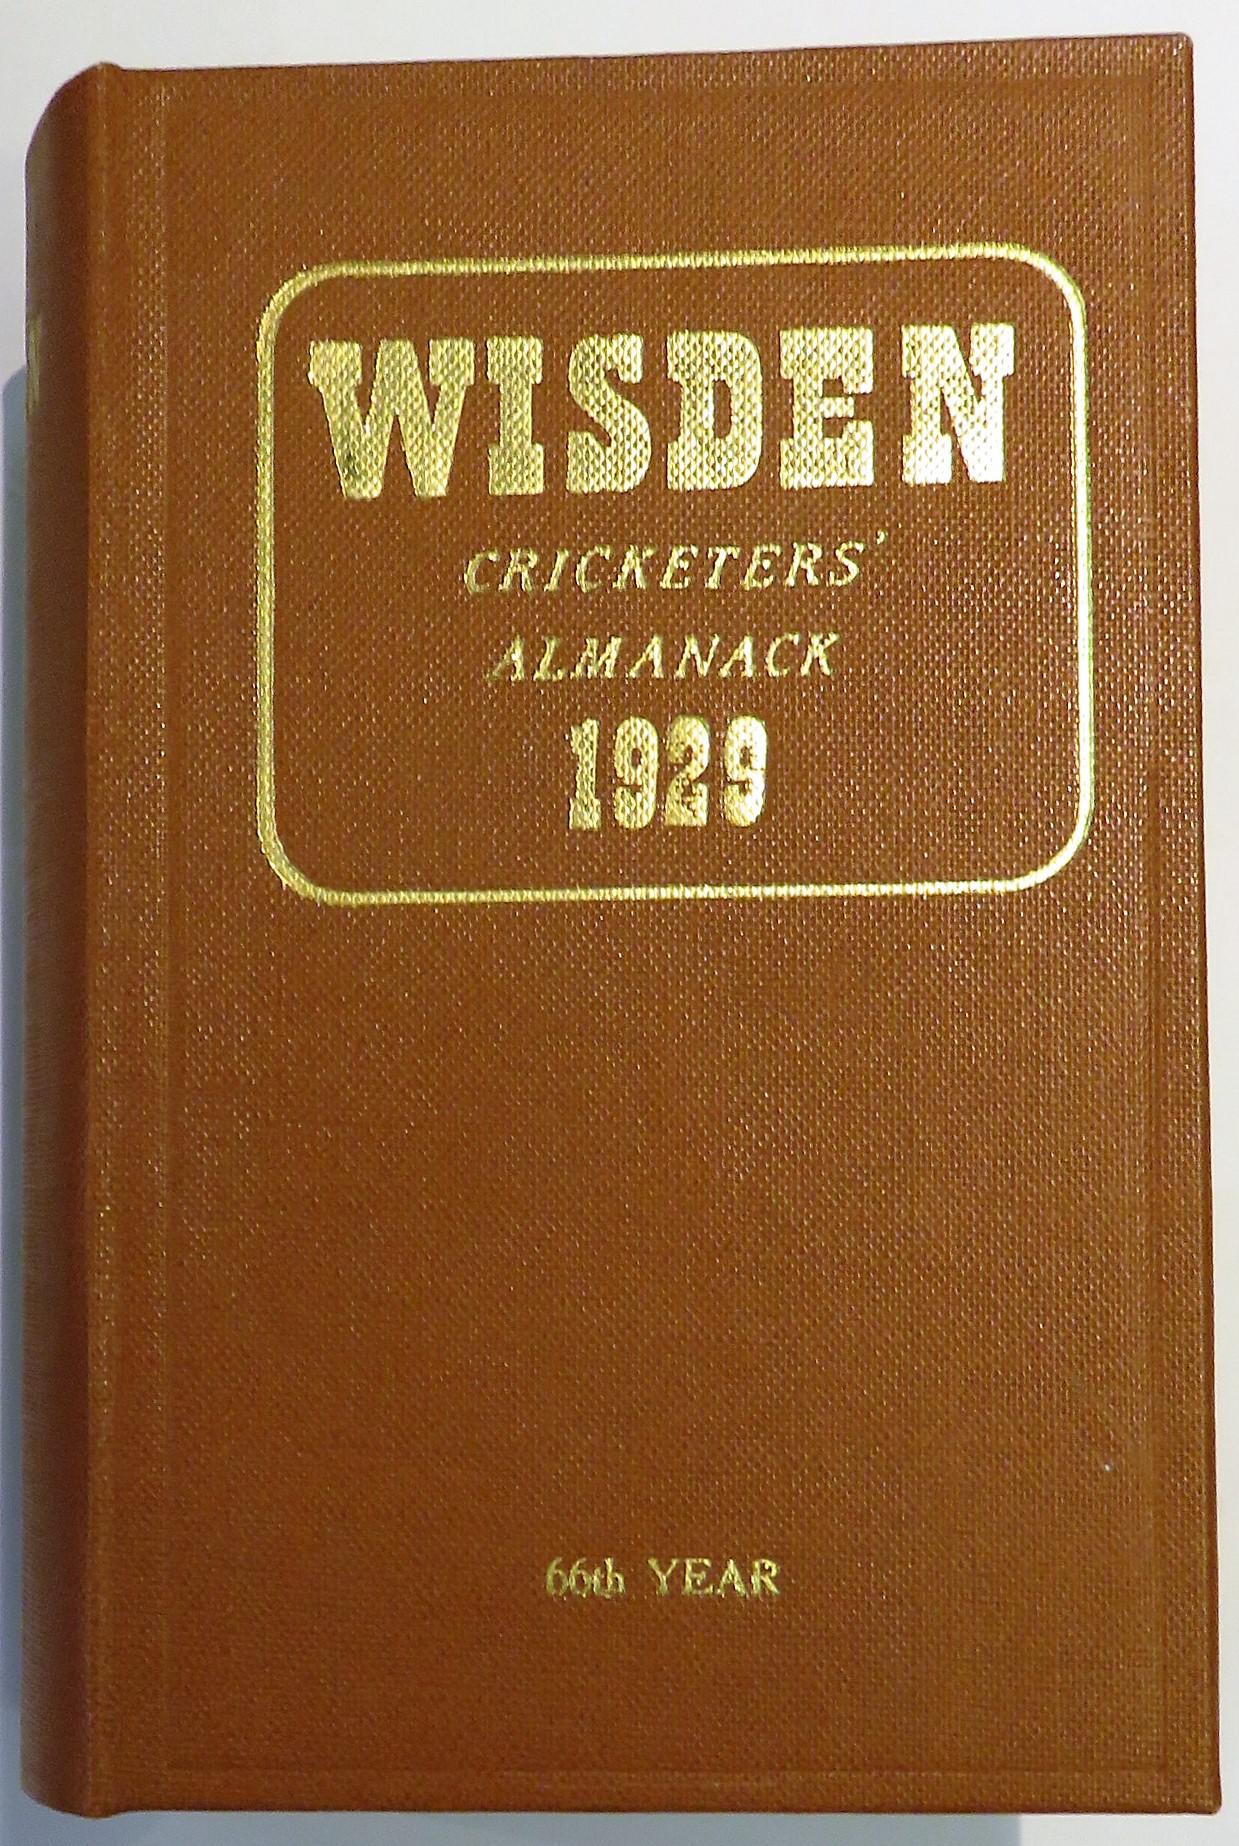 **Wisden Cricketers' Almanack for 1929**